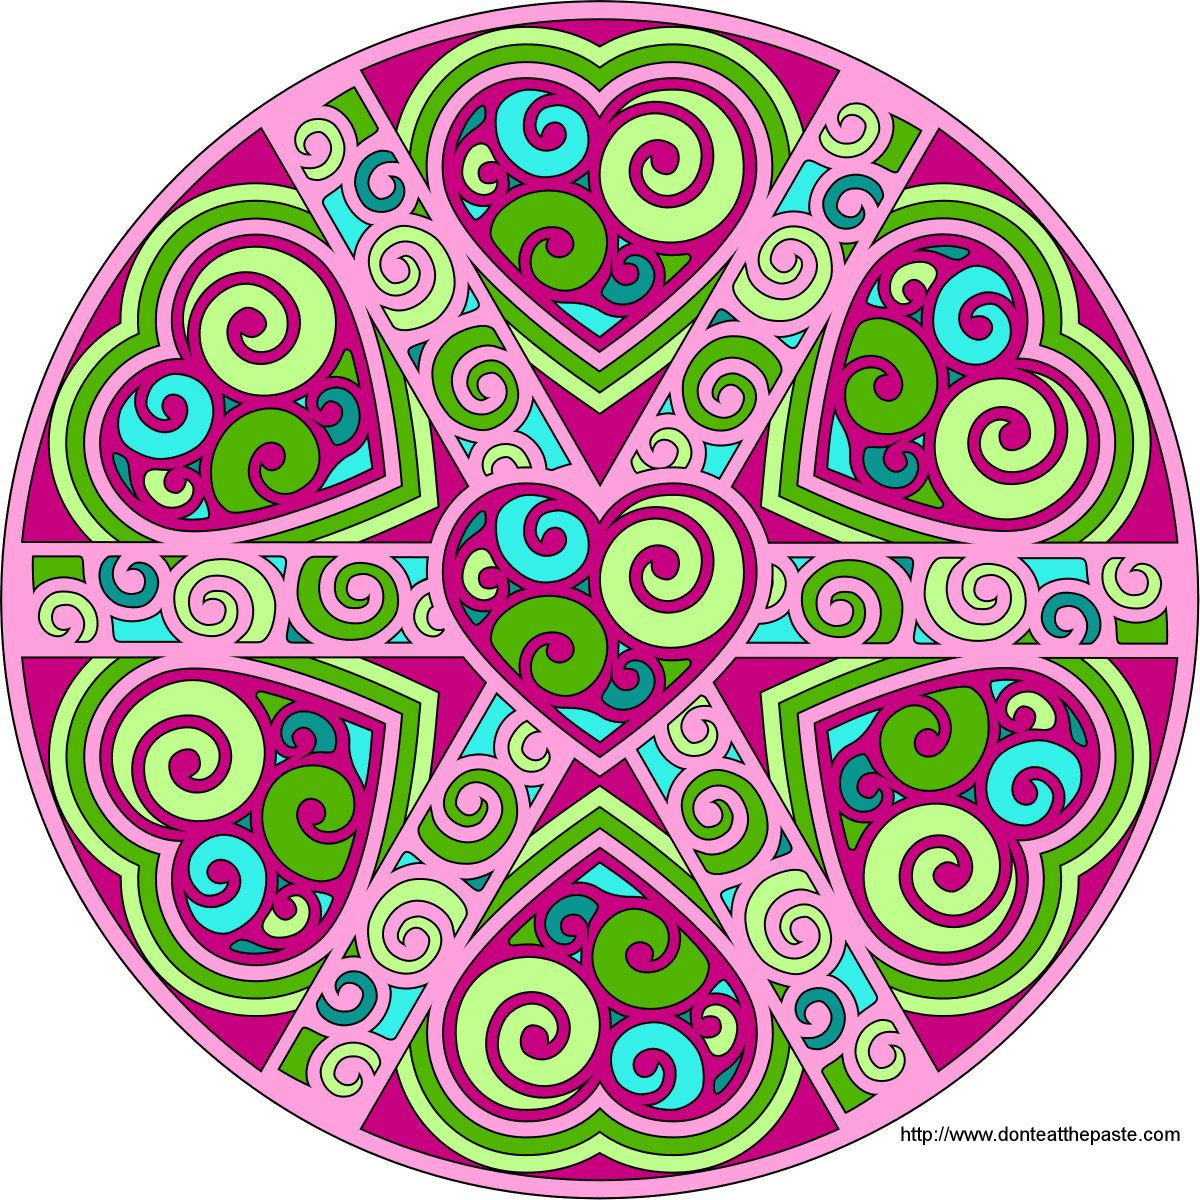 Swirled Hearts Mandala blank available to print and color